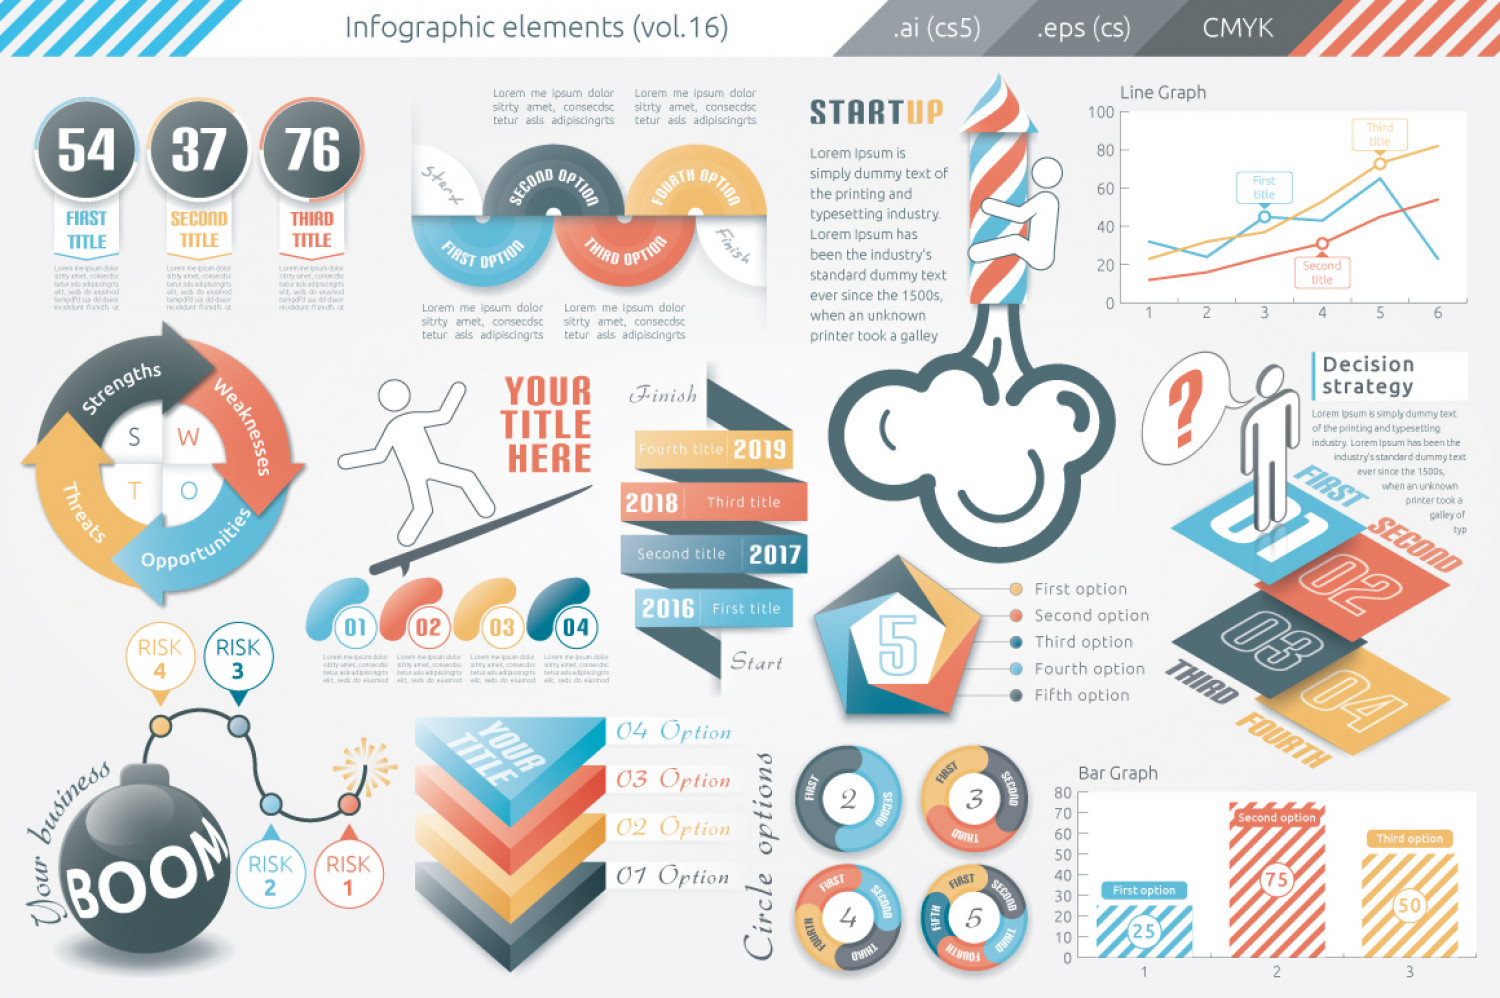 Infographic Elements (v16) Infographic